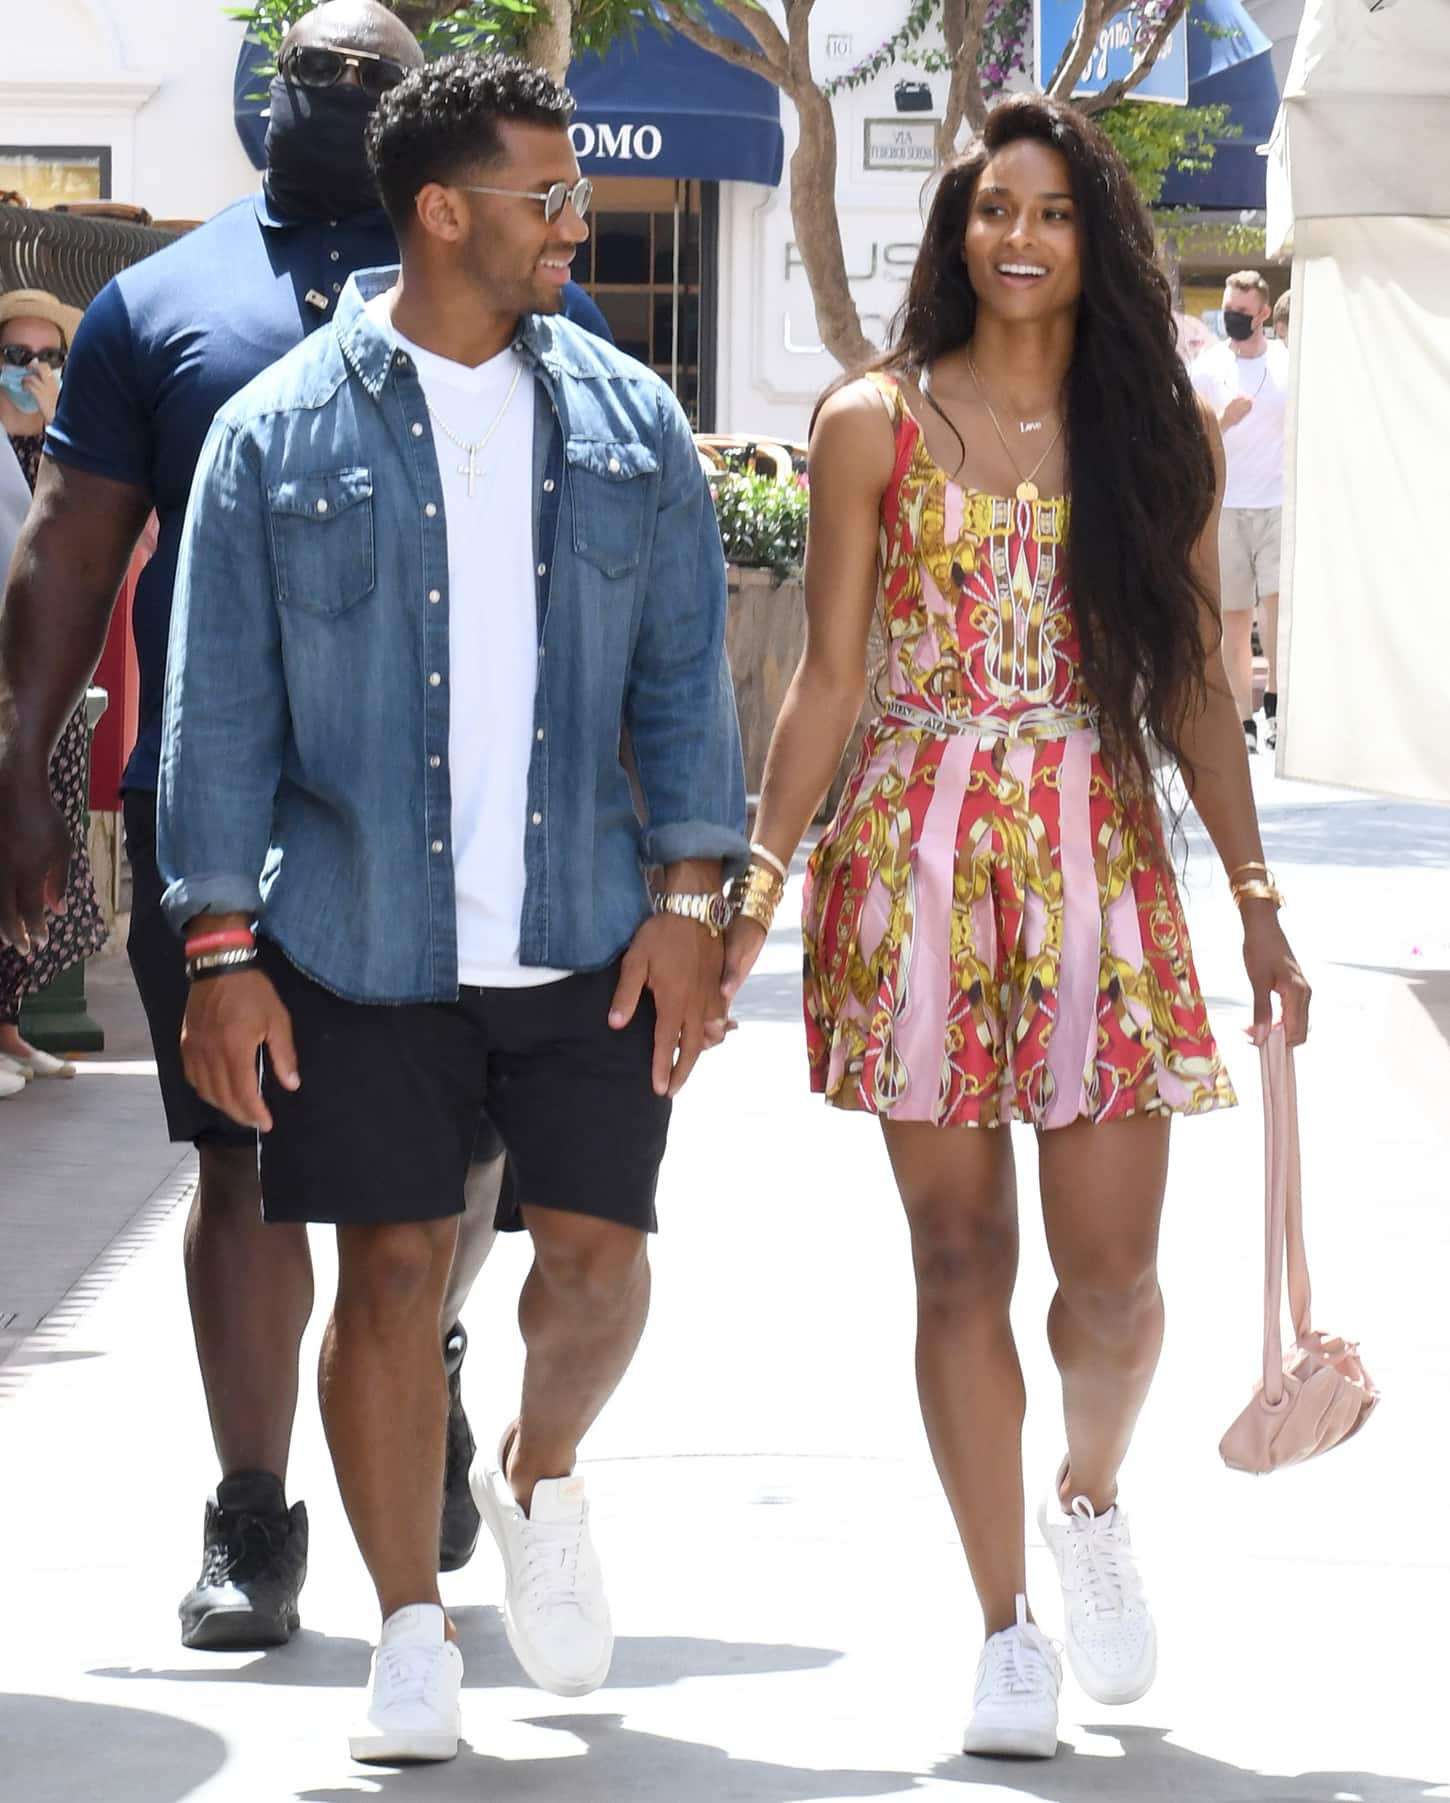 Ciara shows off her toned legs in a chic patterned Moschino mini dress